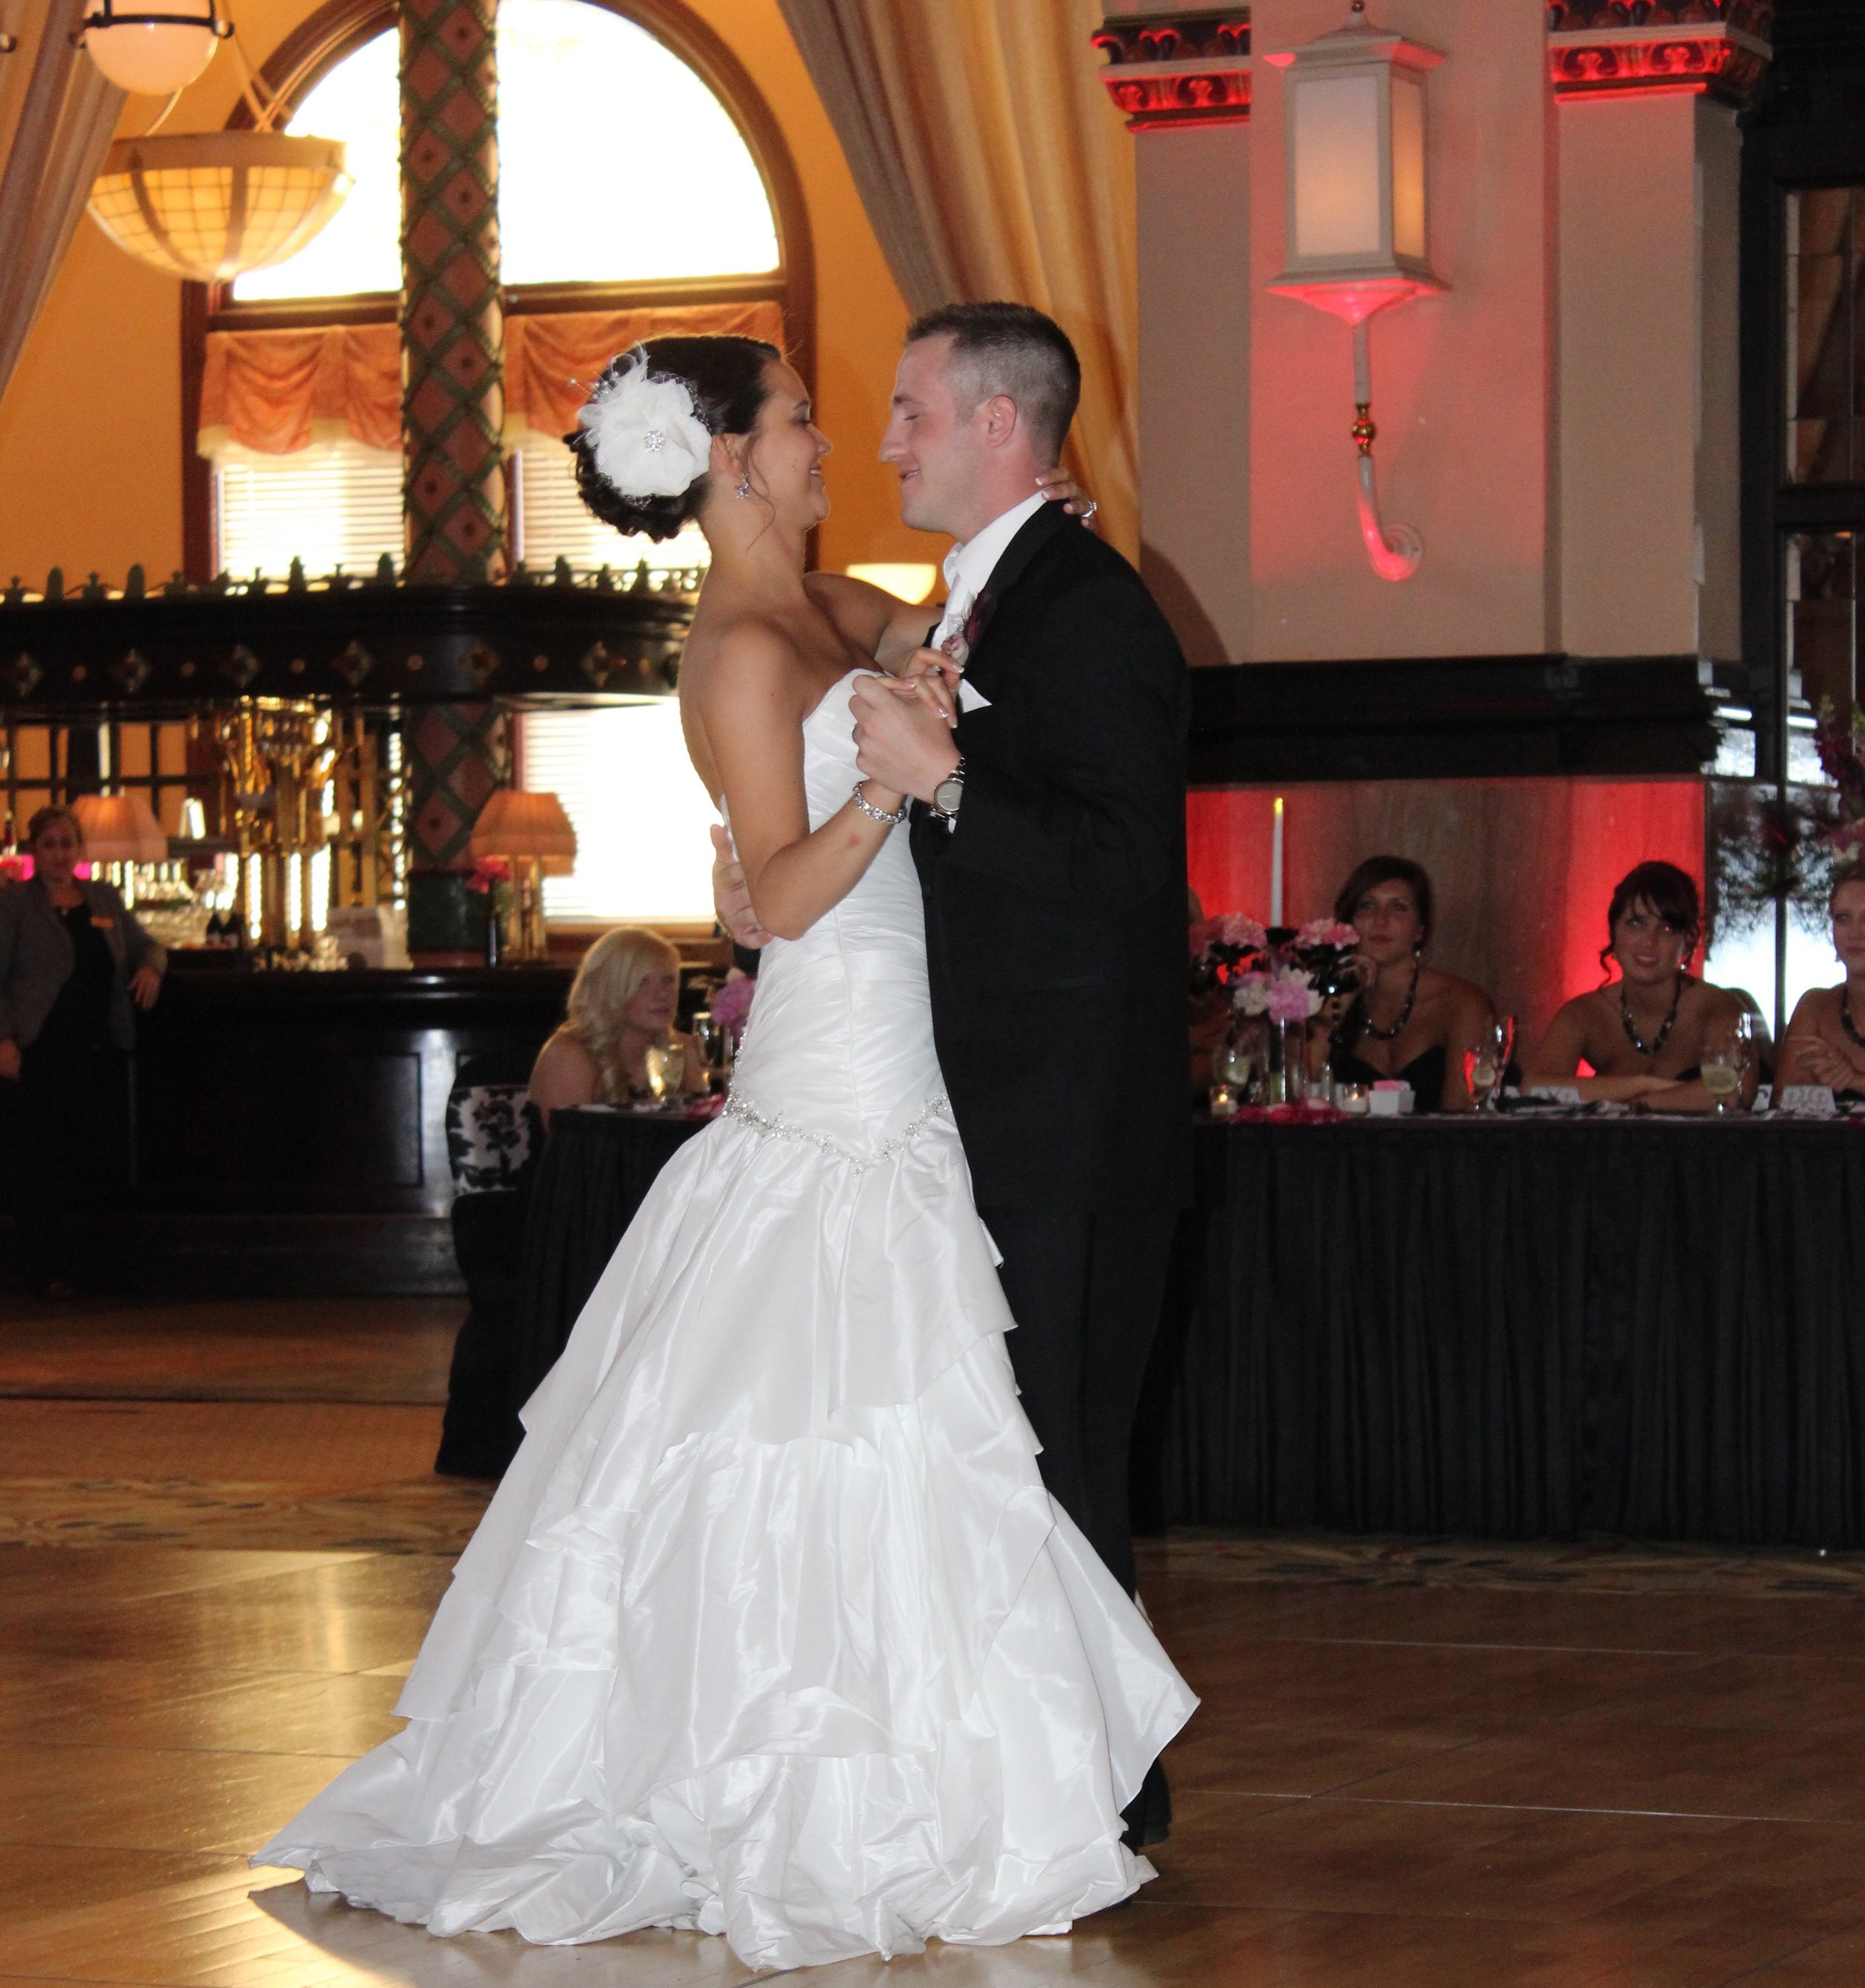 """Jordan & Jason found their 1st dance on YouTube - """"Your Song"""" by Zelda Love"""